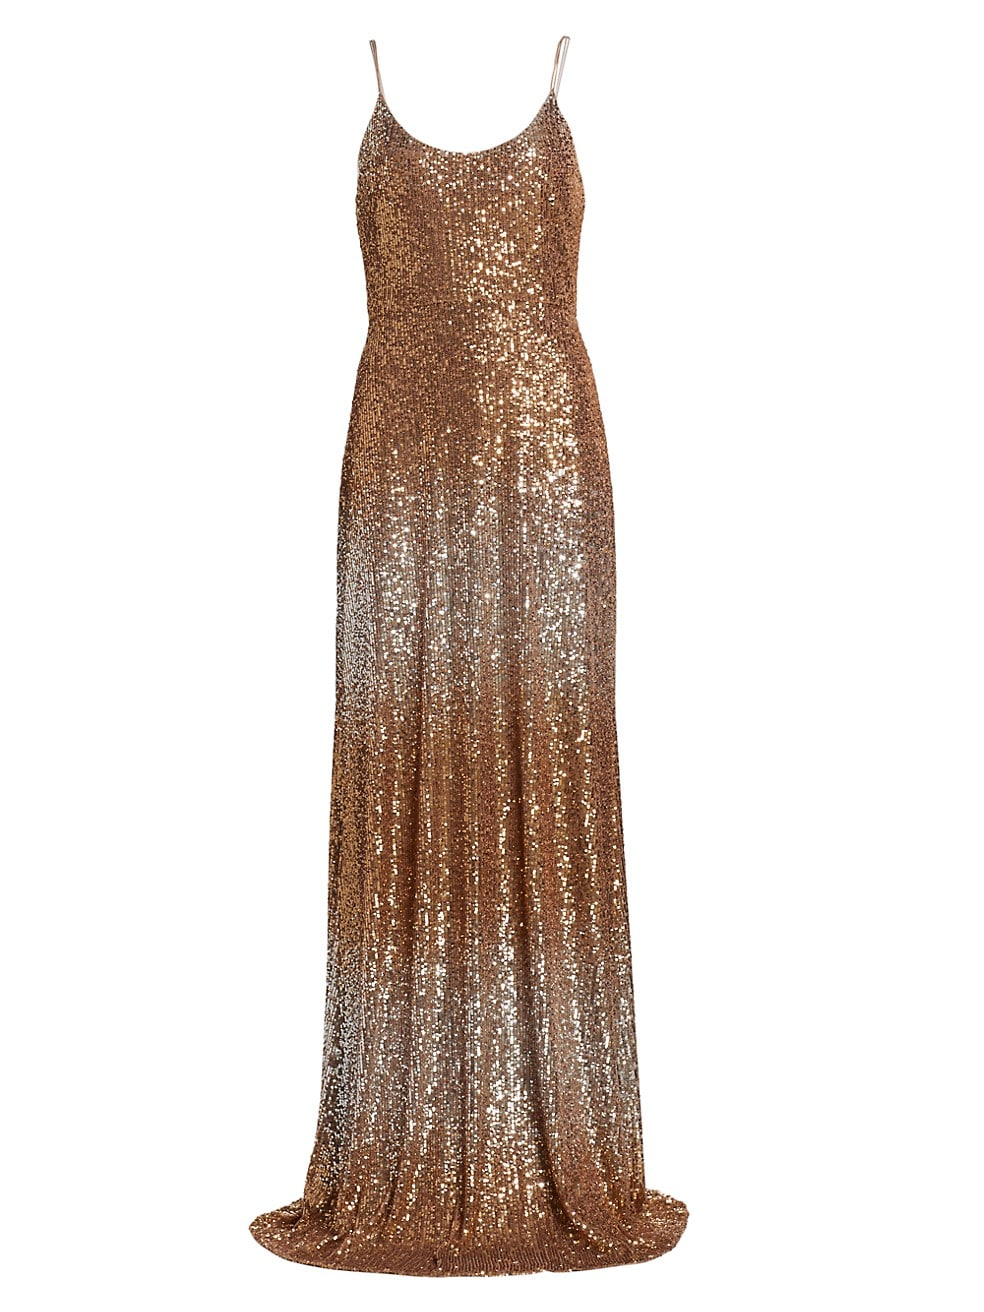 Silver and gold spaghetti strap sequin gown for fall.